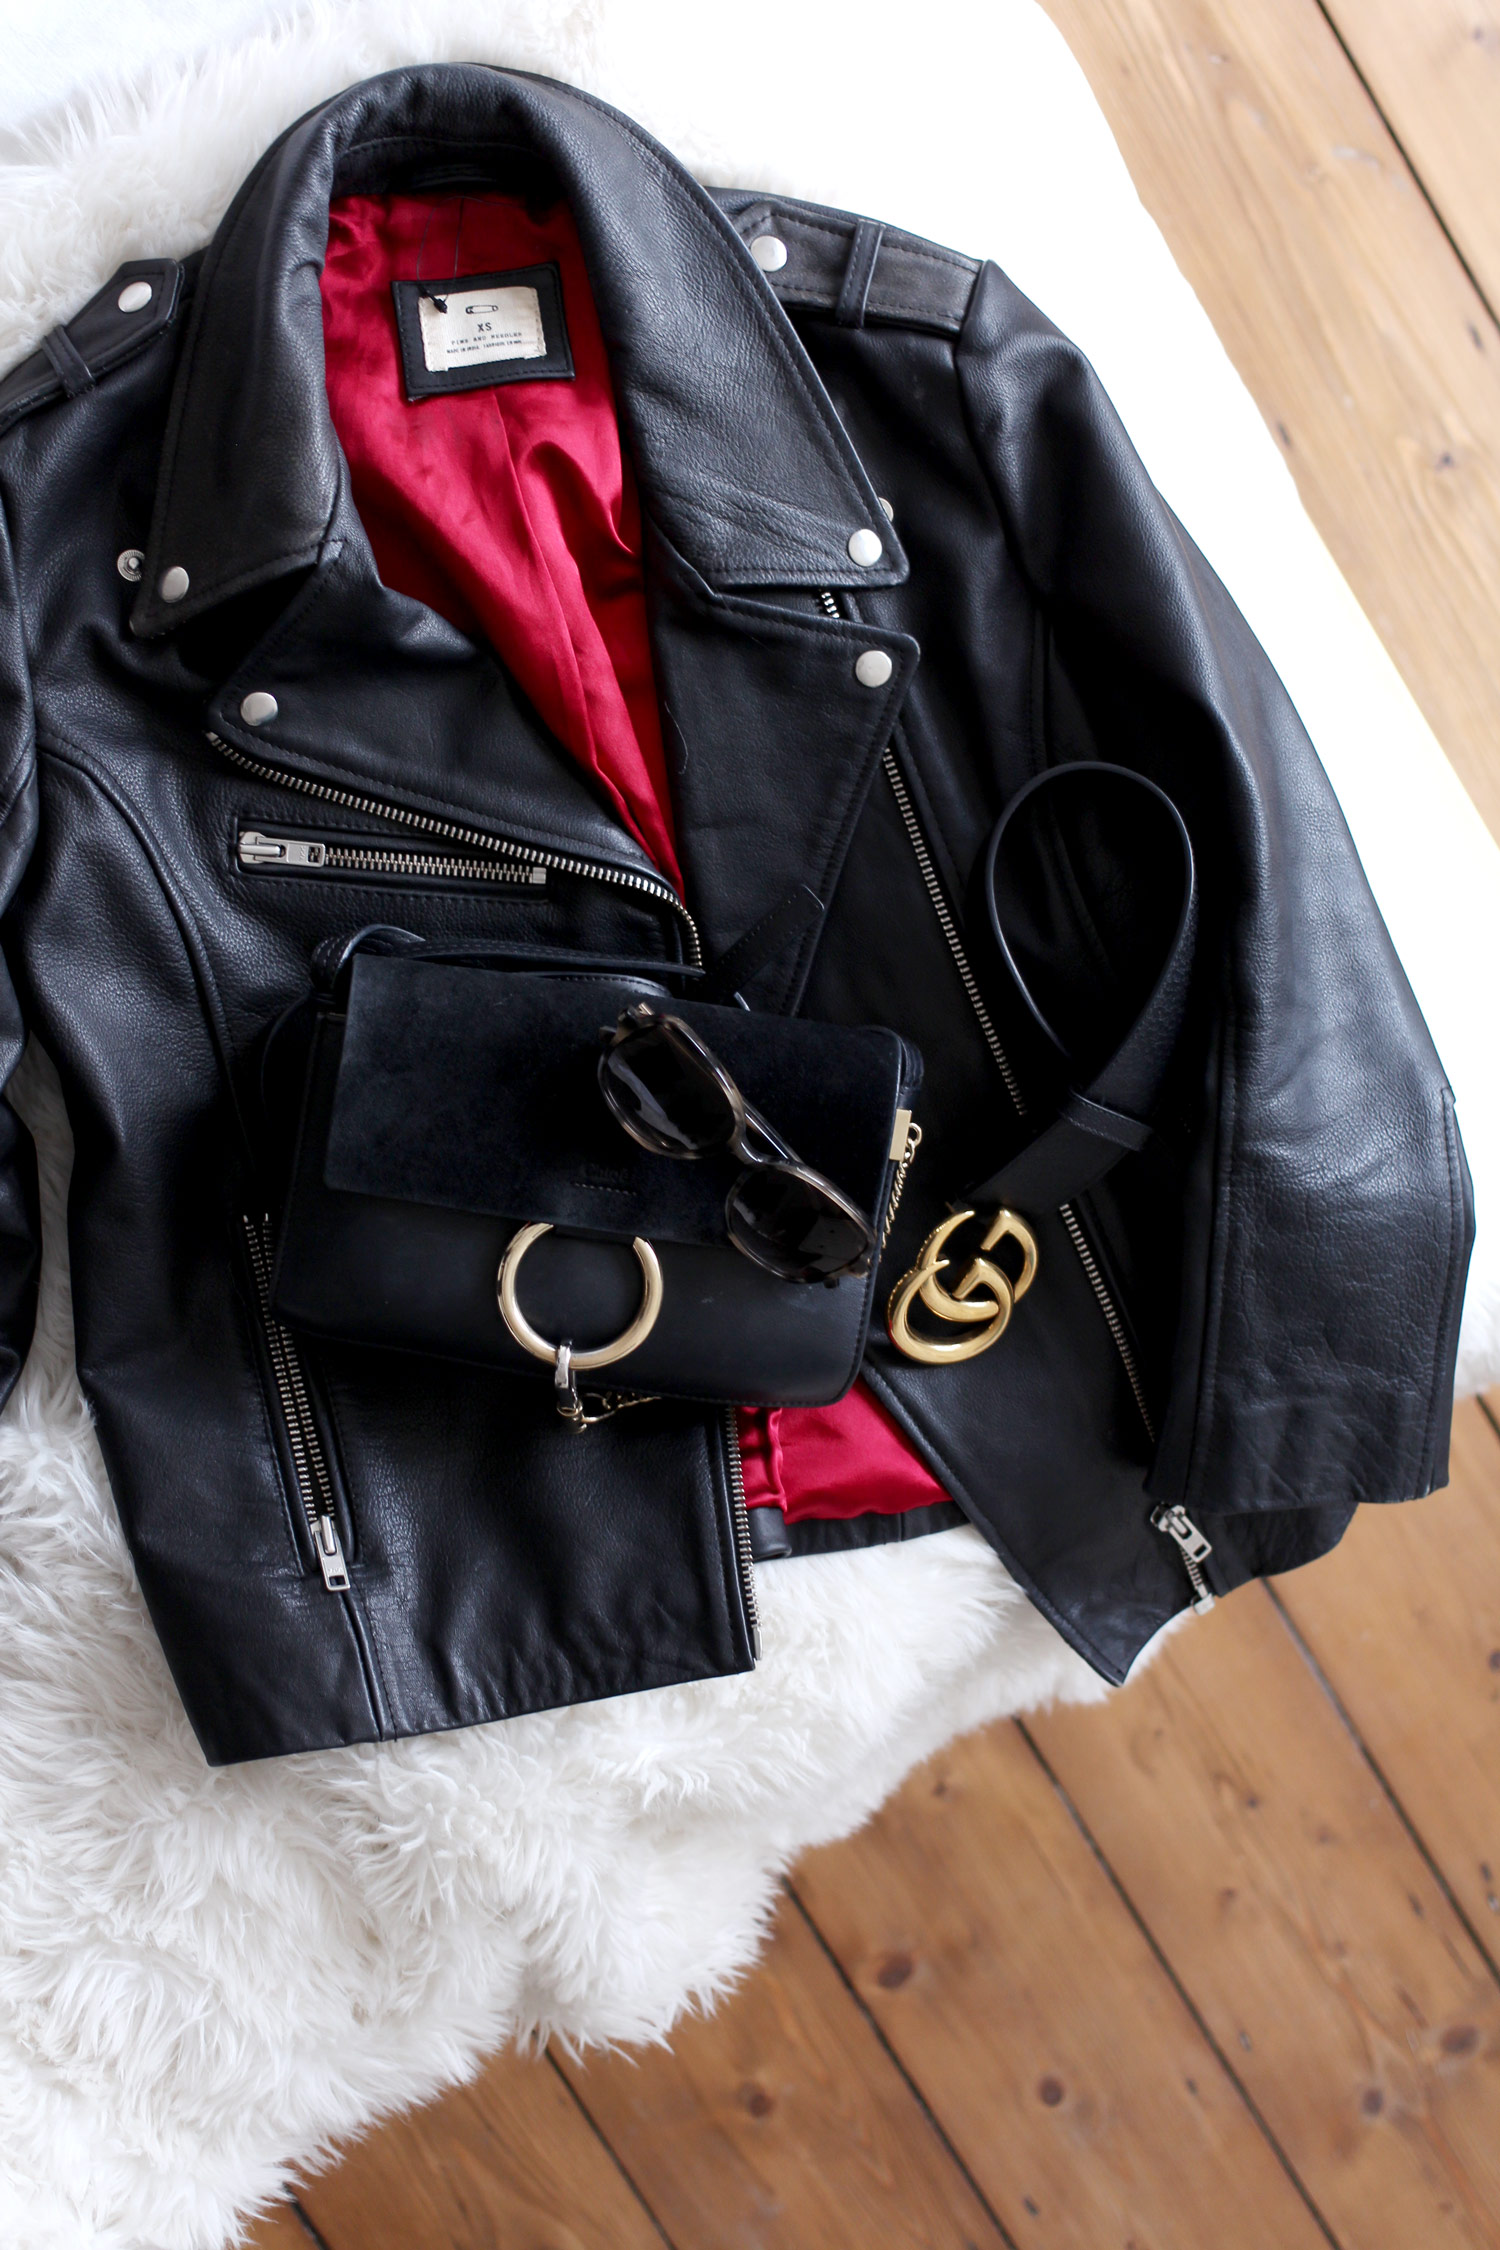 how-I-choose-what-to-invest-in-chloe-gucci-ysl